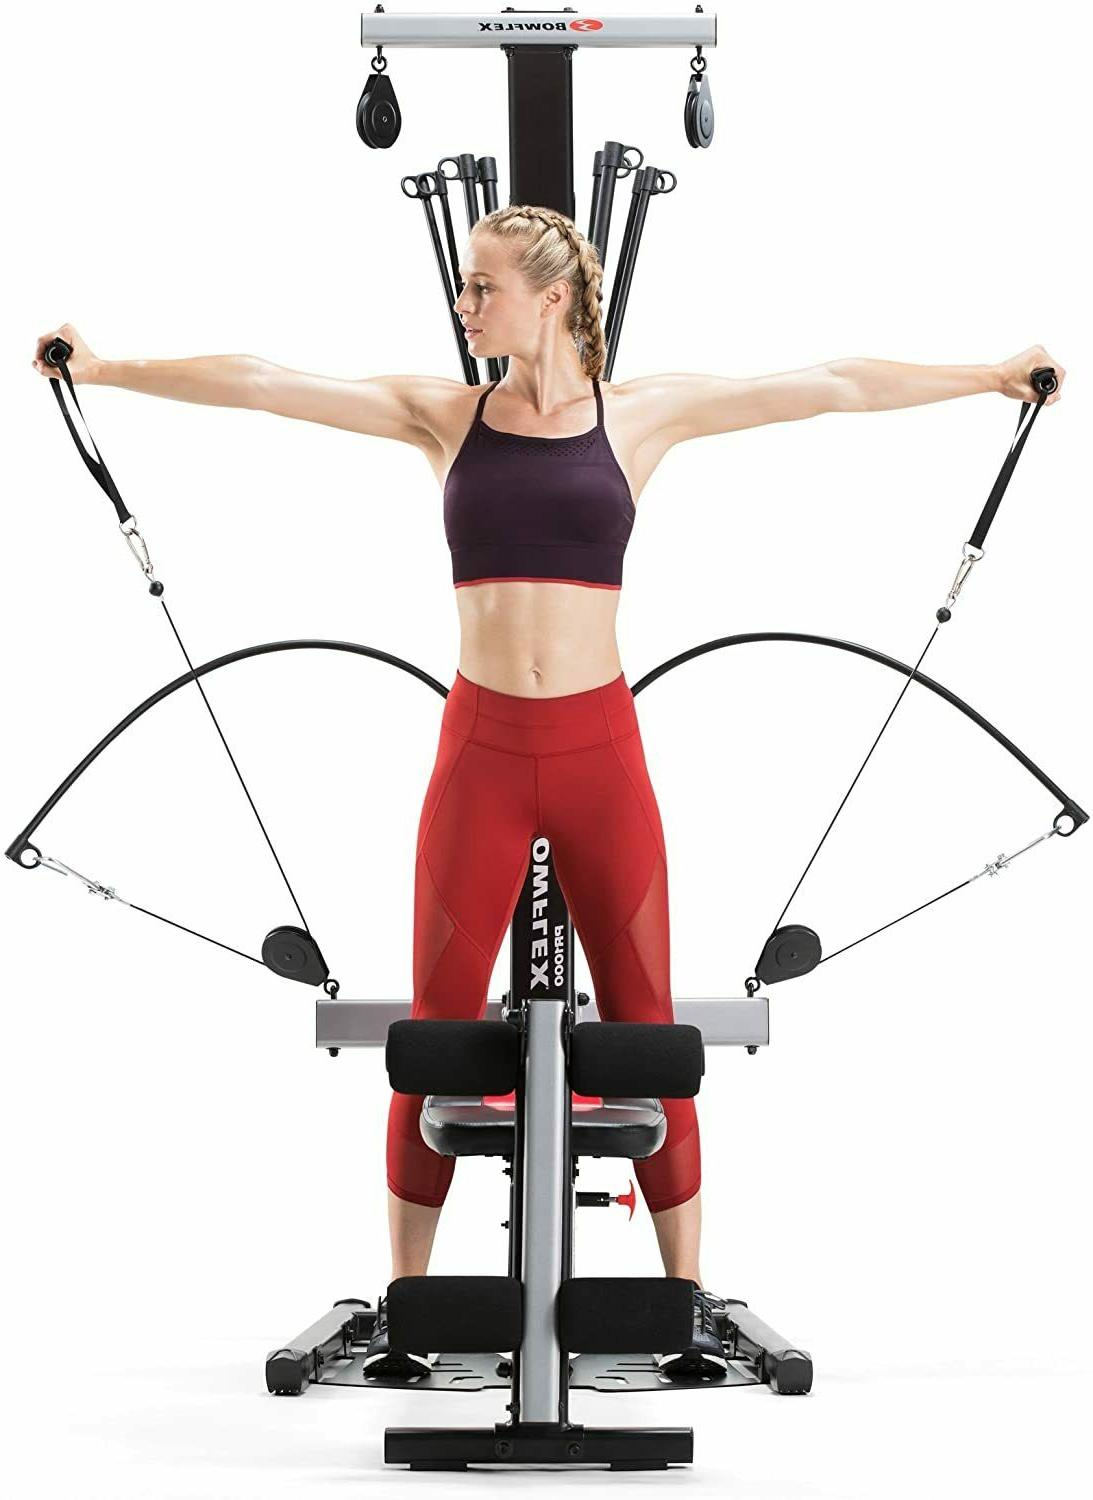 new pr1000 home gym free shipping in